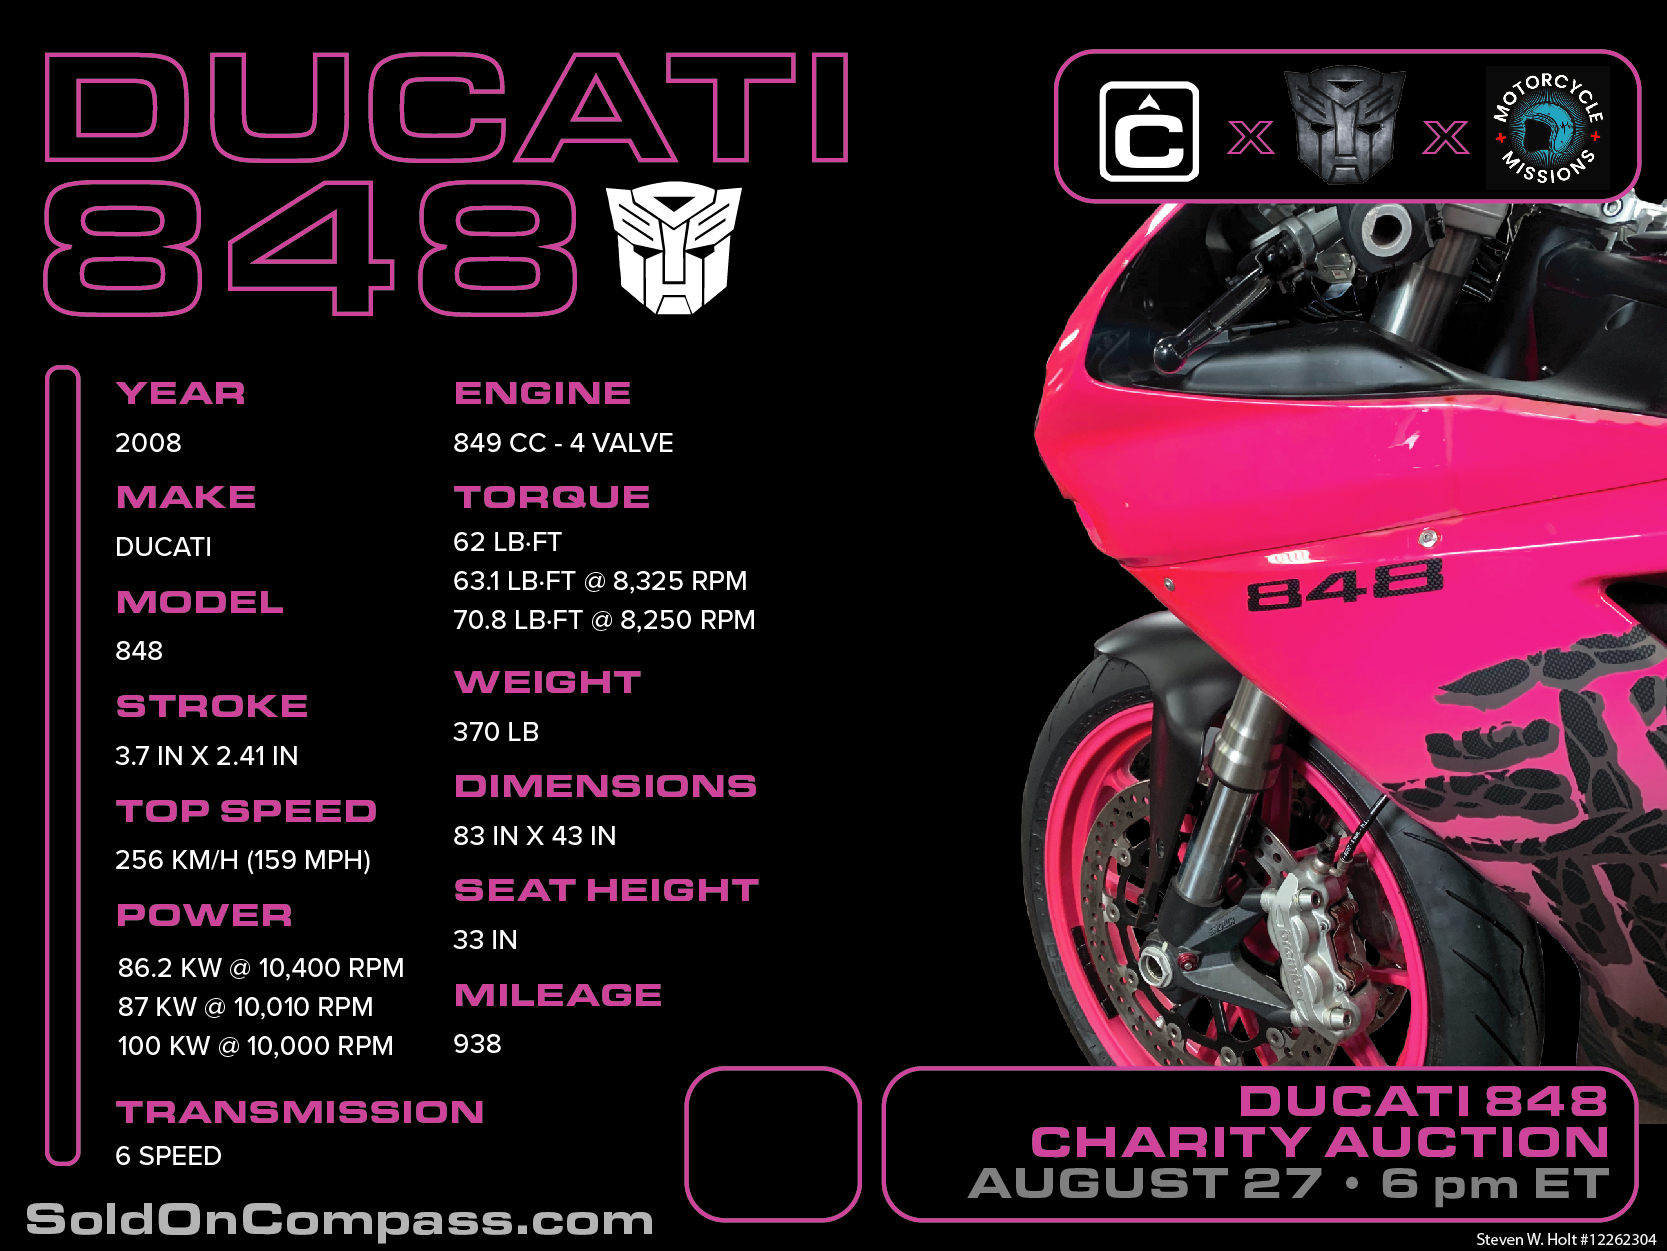 Ducati 848 Motorcycle Missions